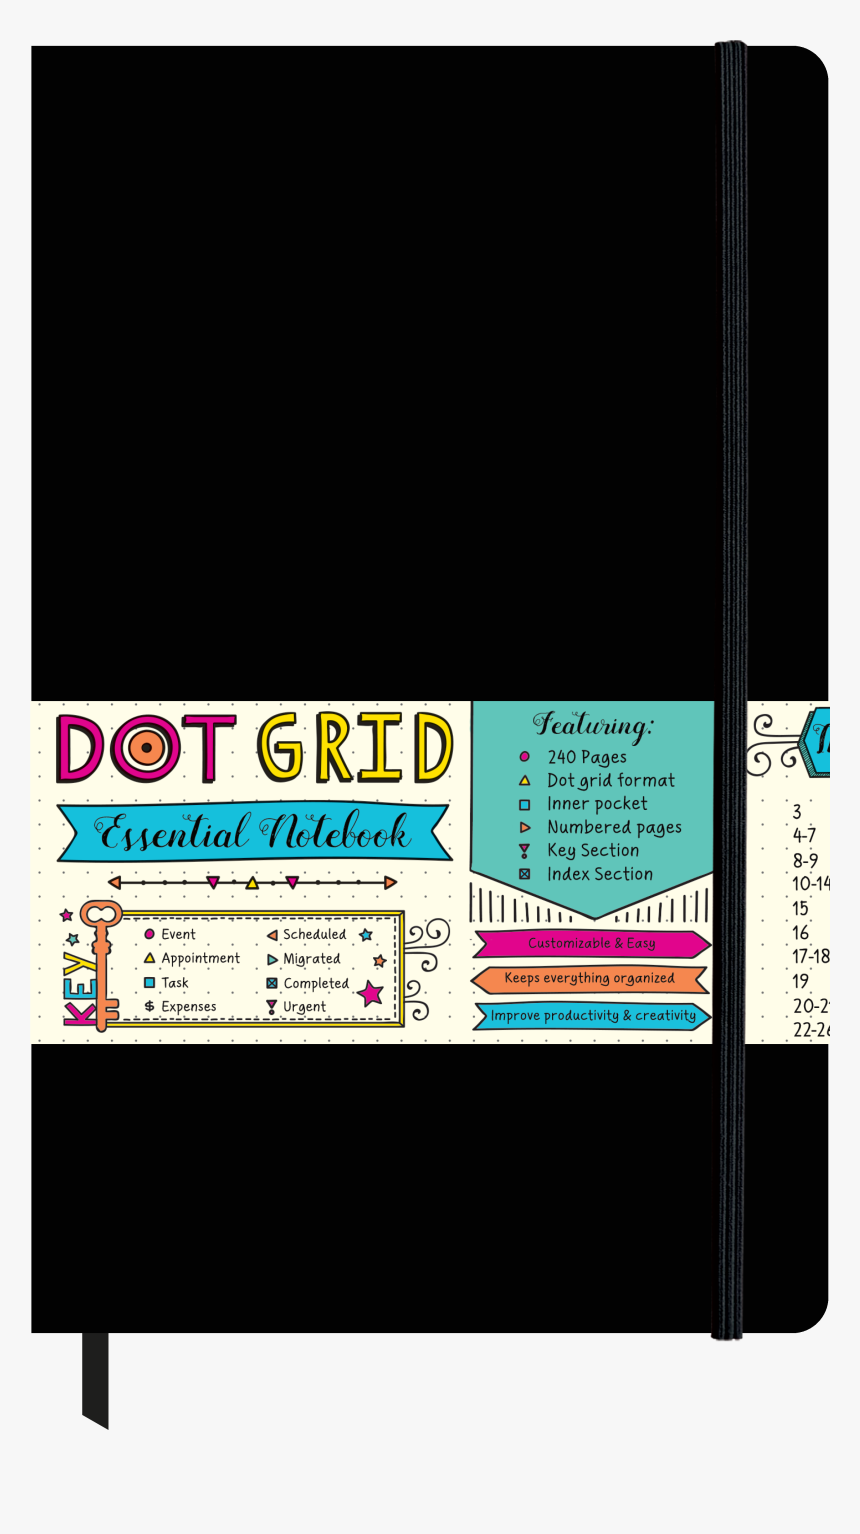 Notebook, HD Png Download, Free Download